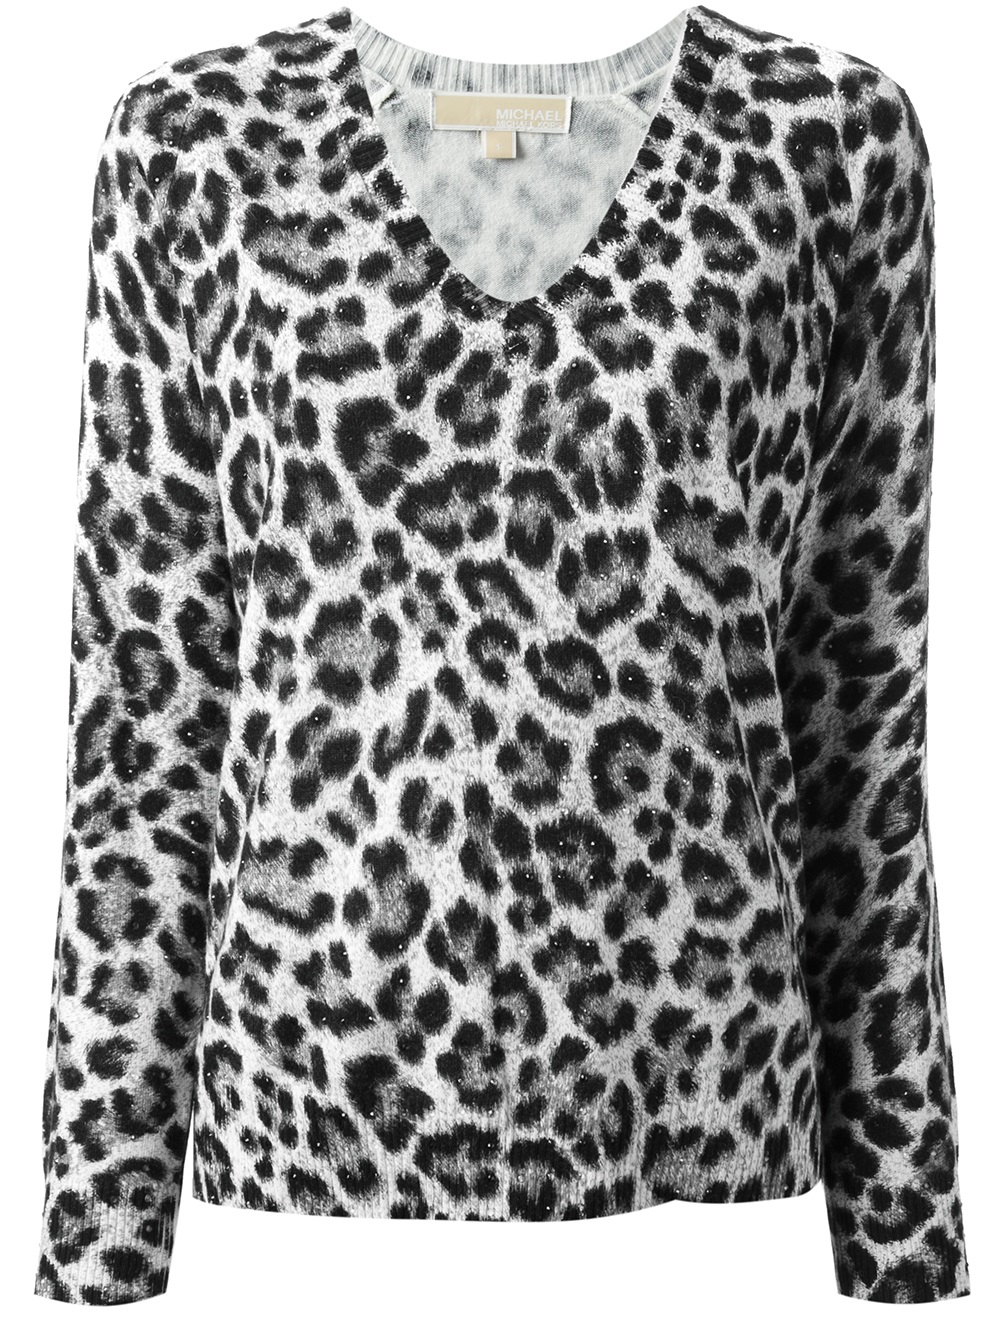 Michael michael kors Leopard Print Sweater in Black | Lyst